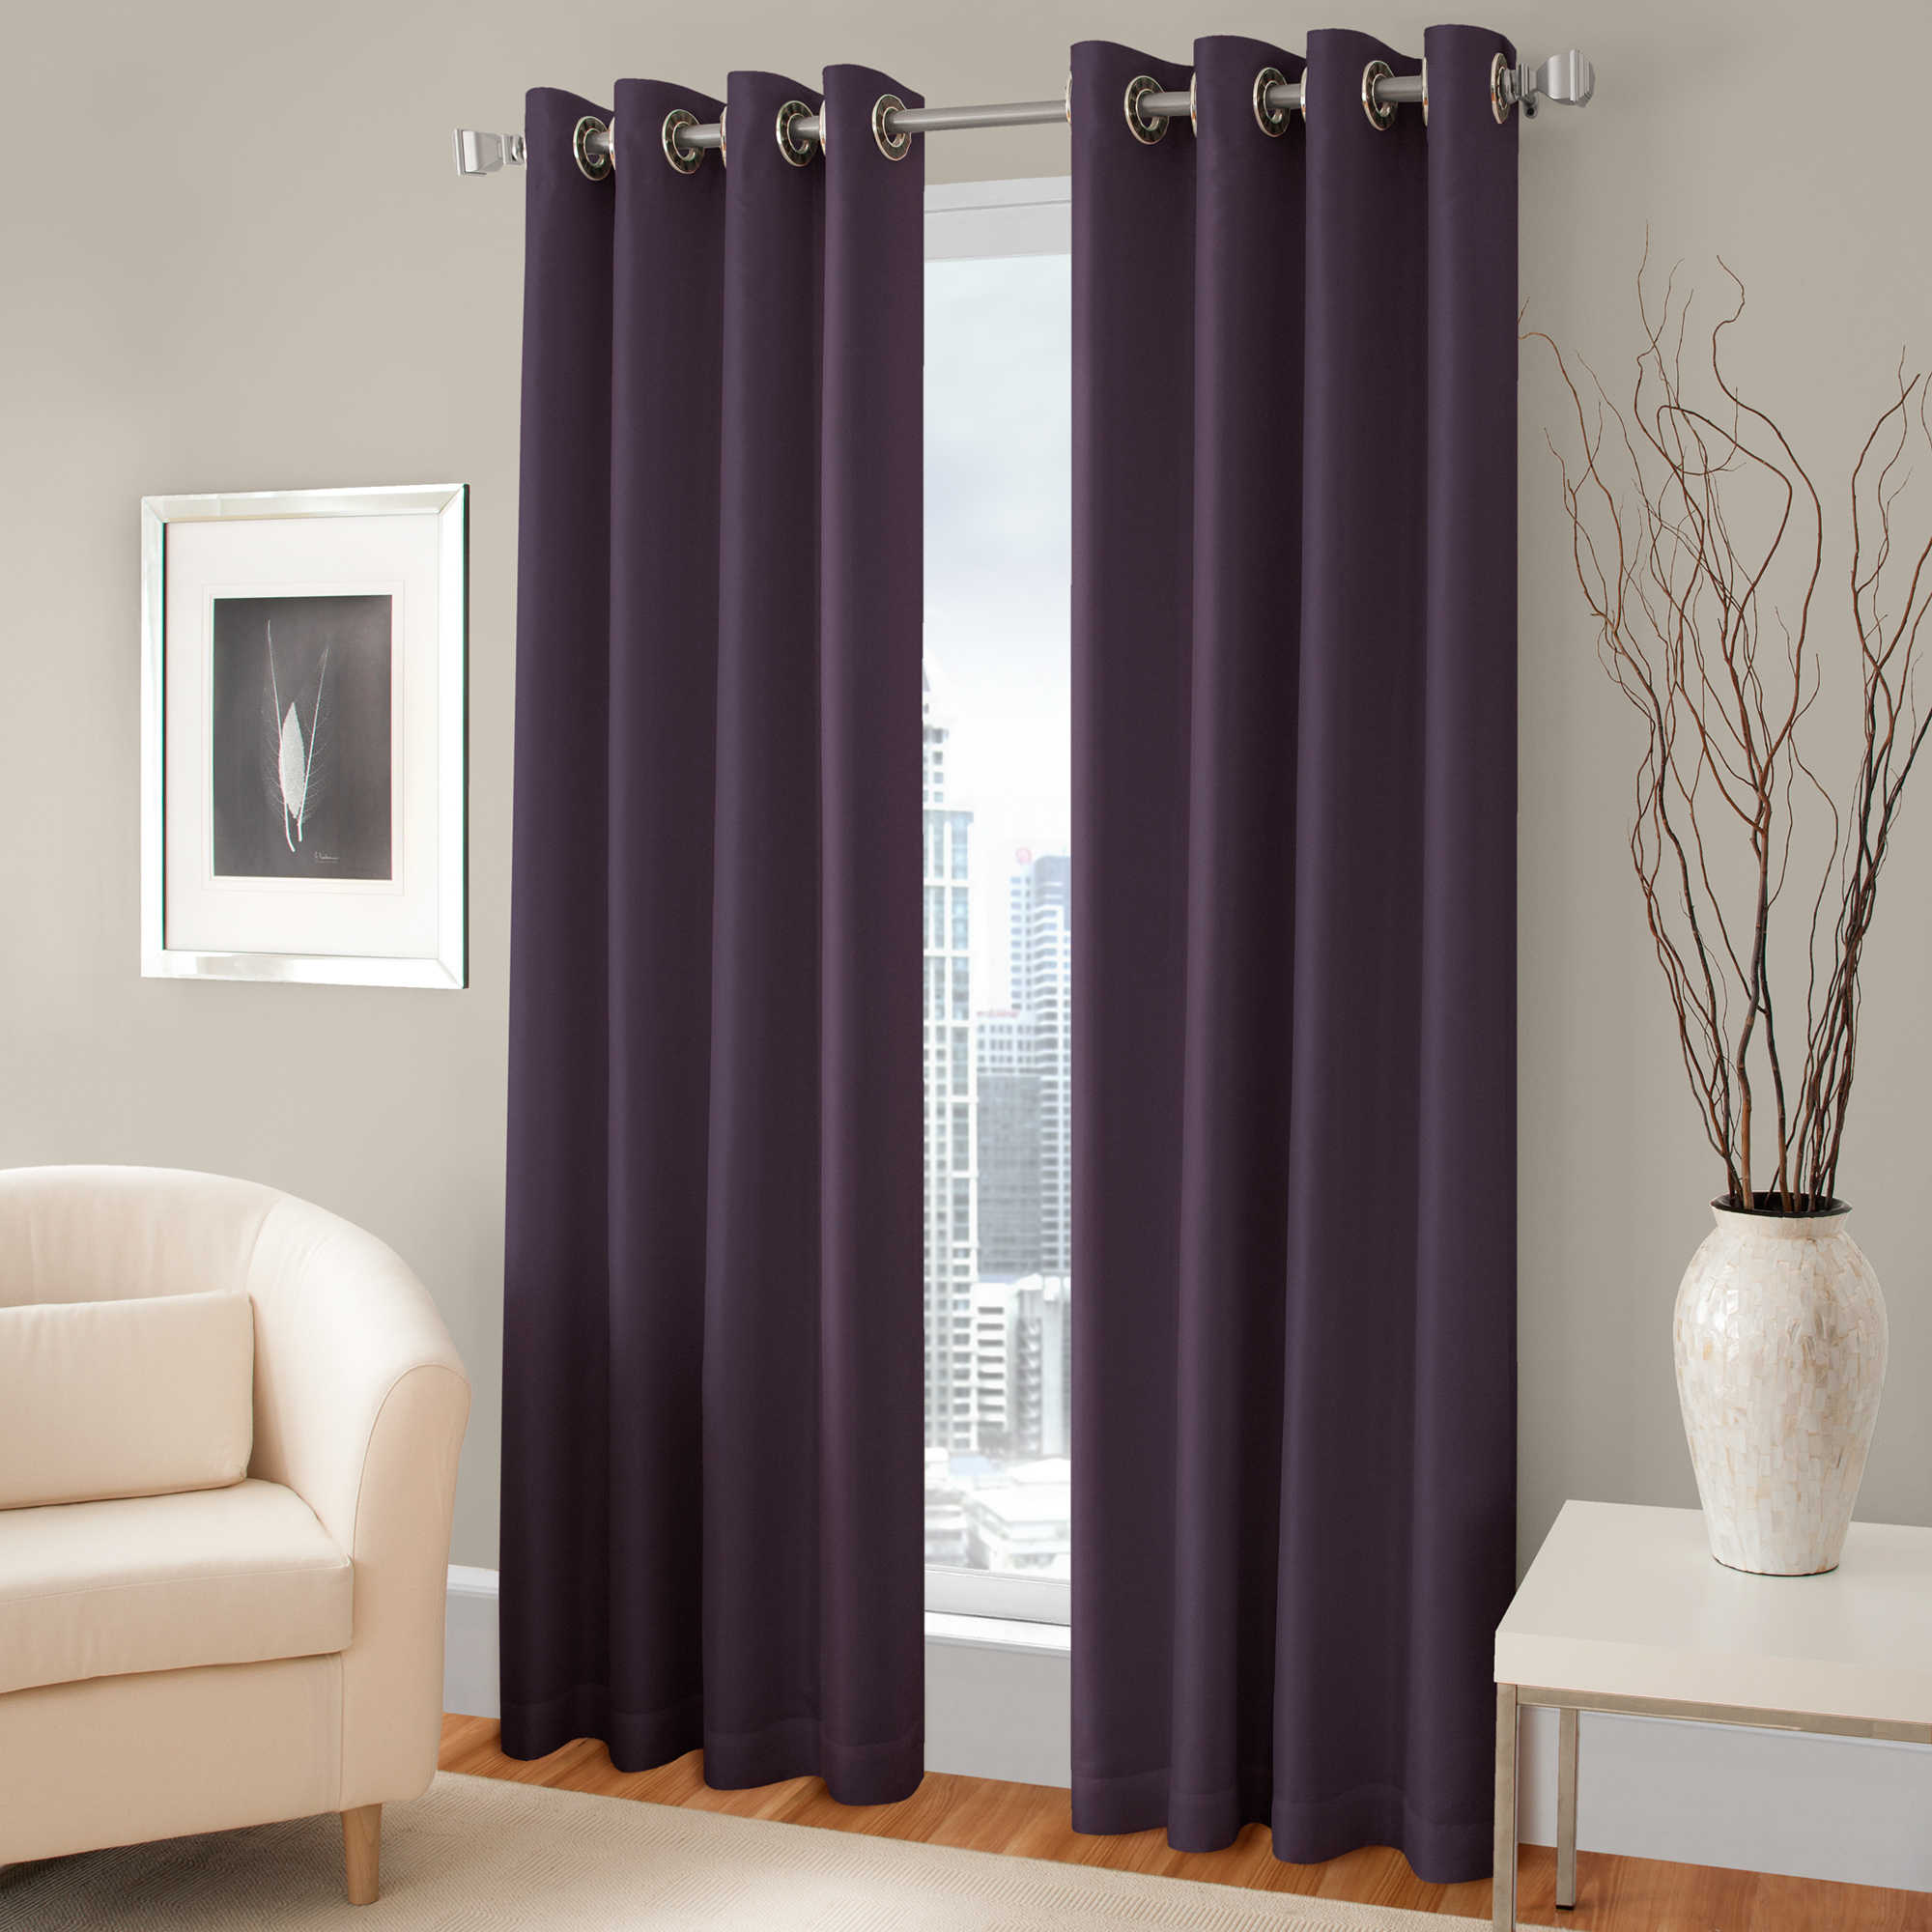 curtain curtains theater zero thermaback eclipse pin home blackout velvet absolute window